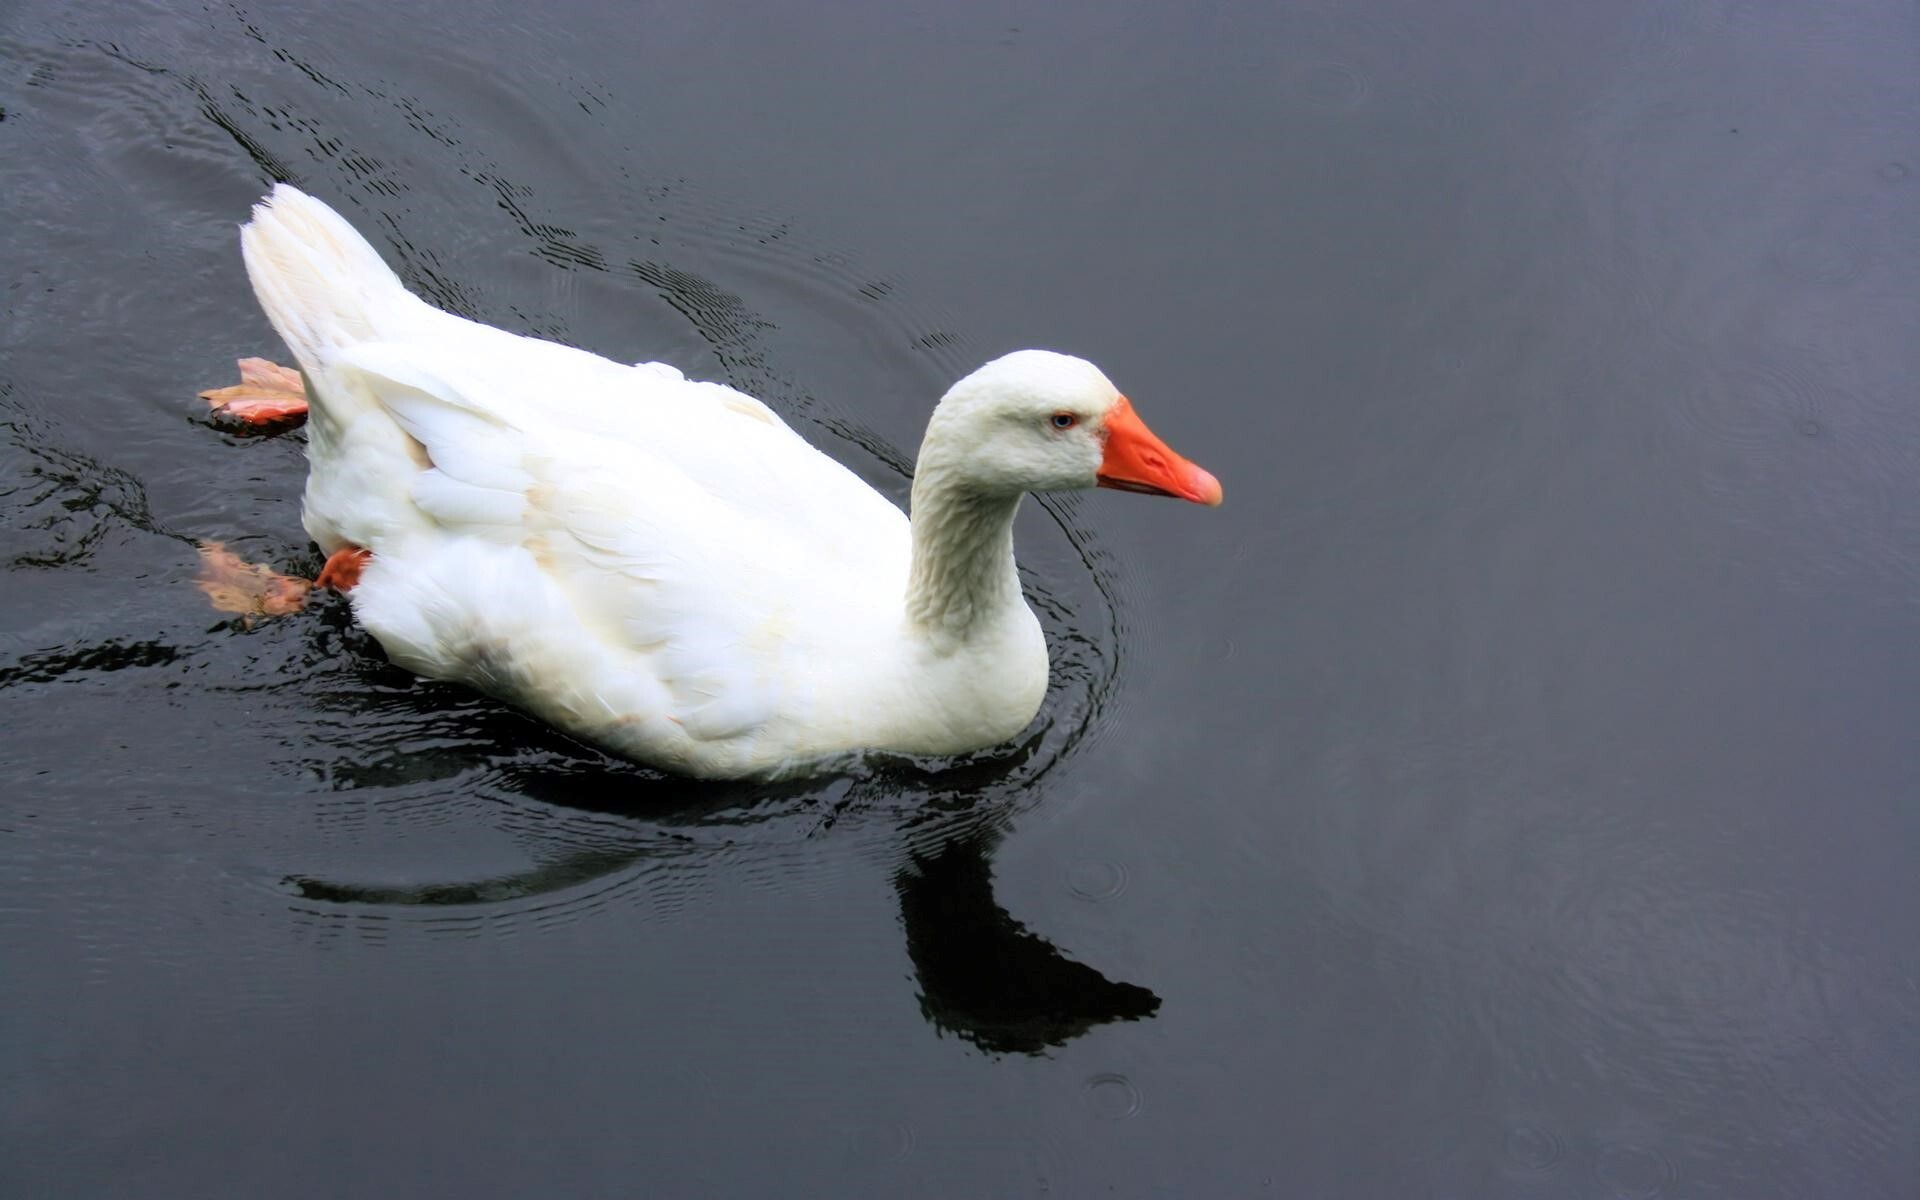 White Duck Swimming In The Water Wallpaper Download Hd Wallpapers